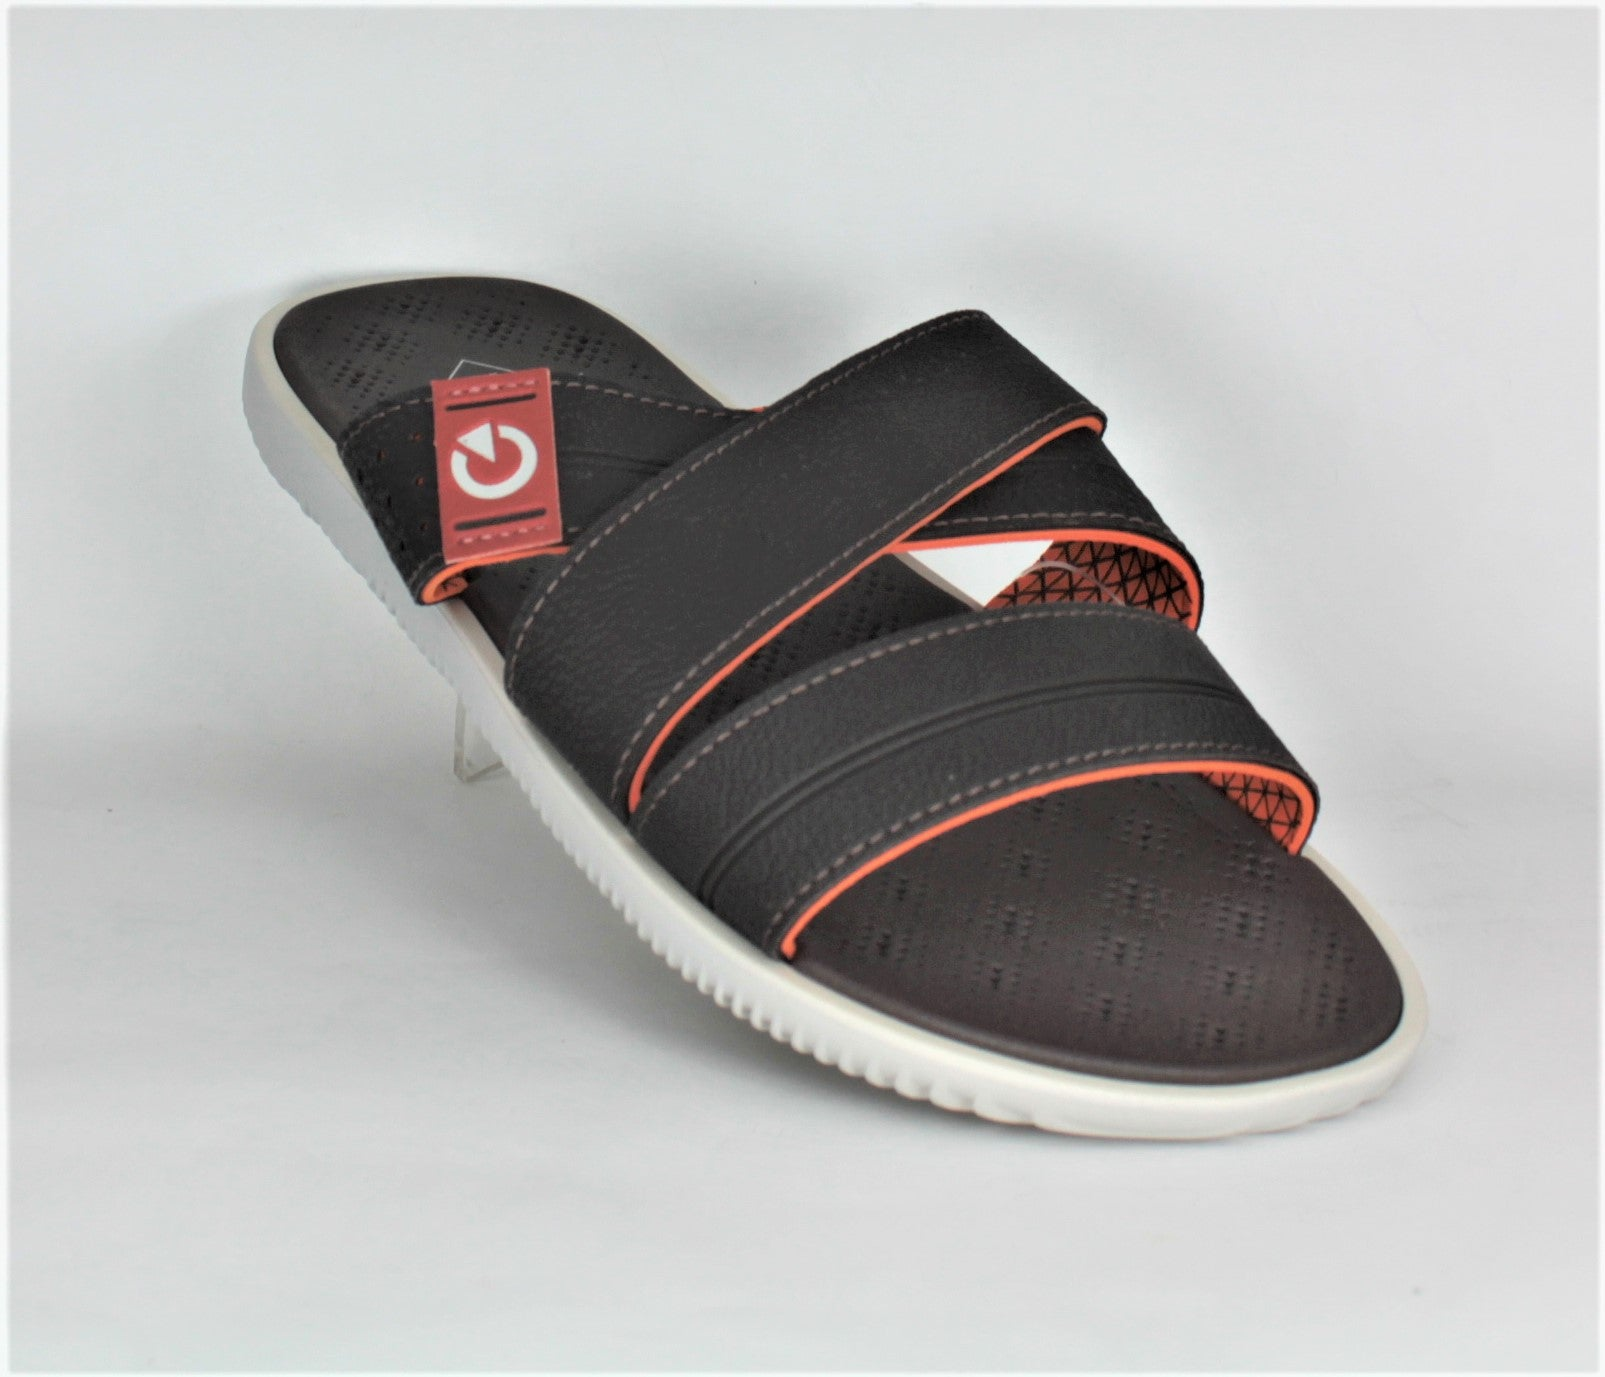 Barcelona Slide Slip On Sandal